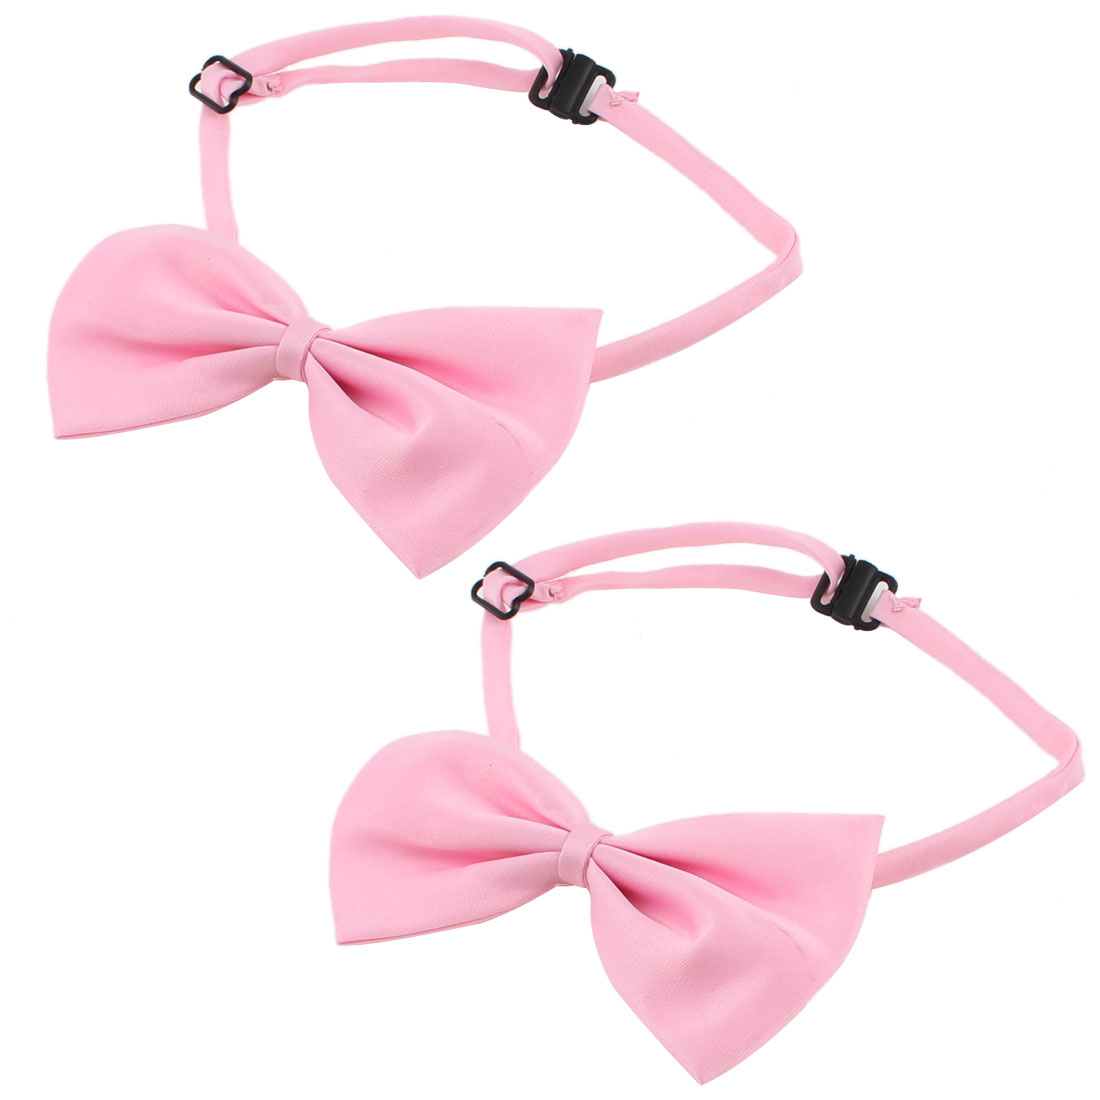 2 Pieces Pink Adjustable Dog Pet Puppy Grooming Necktie Bowtie